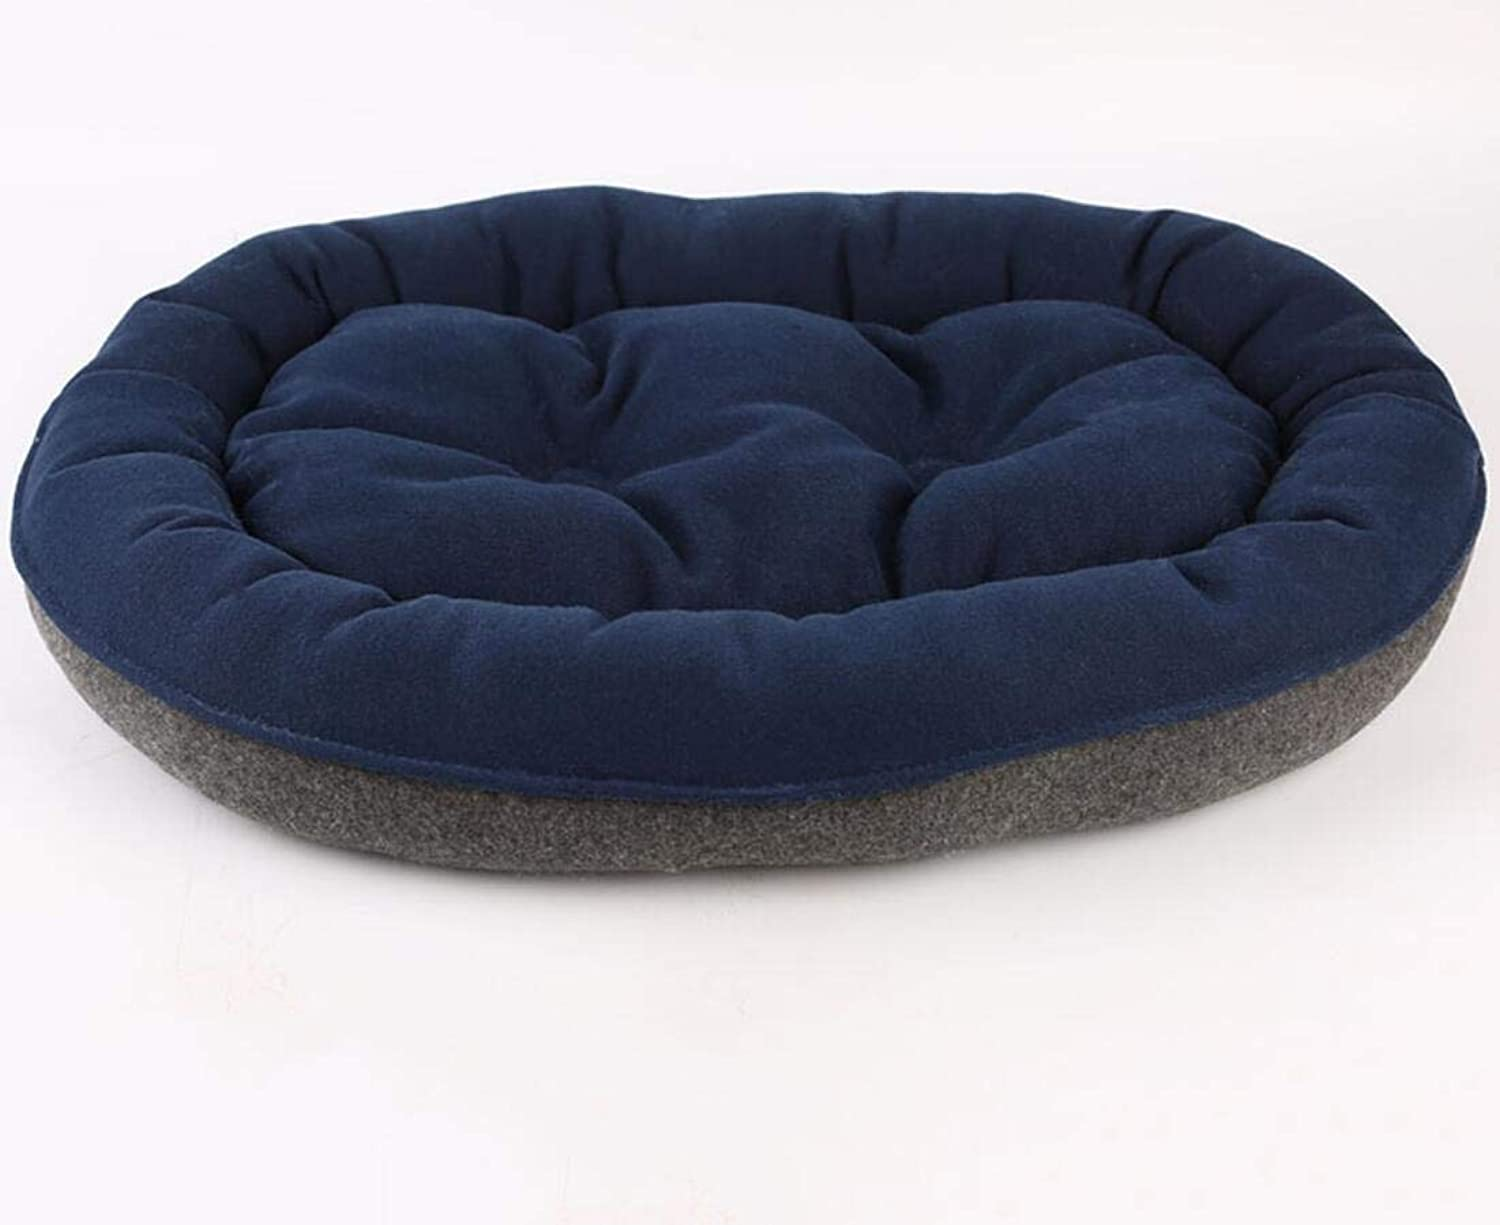 Enjelwang Reversible Shaggy Faux Fur Oval Cuddler Dog Bed House Cushion Small Medium Large Soft Washable Pet Cat Litter Cage Kennel